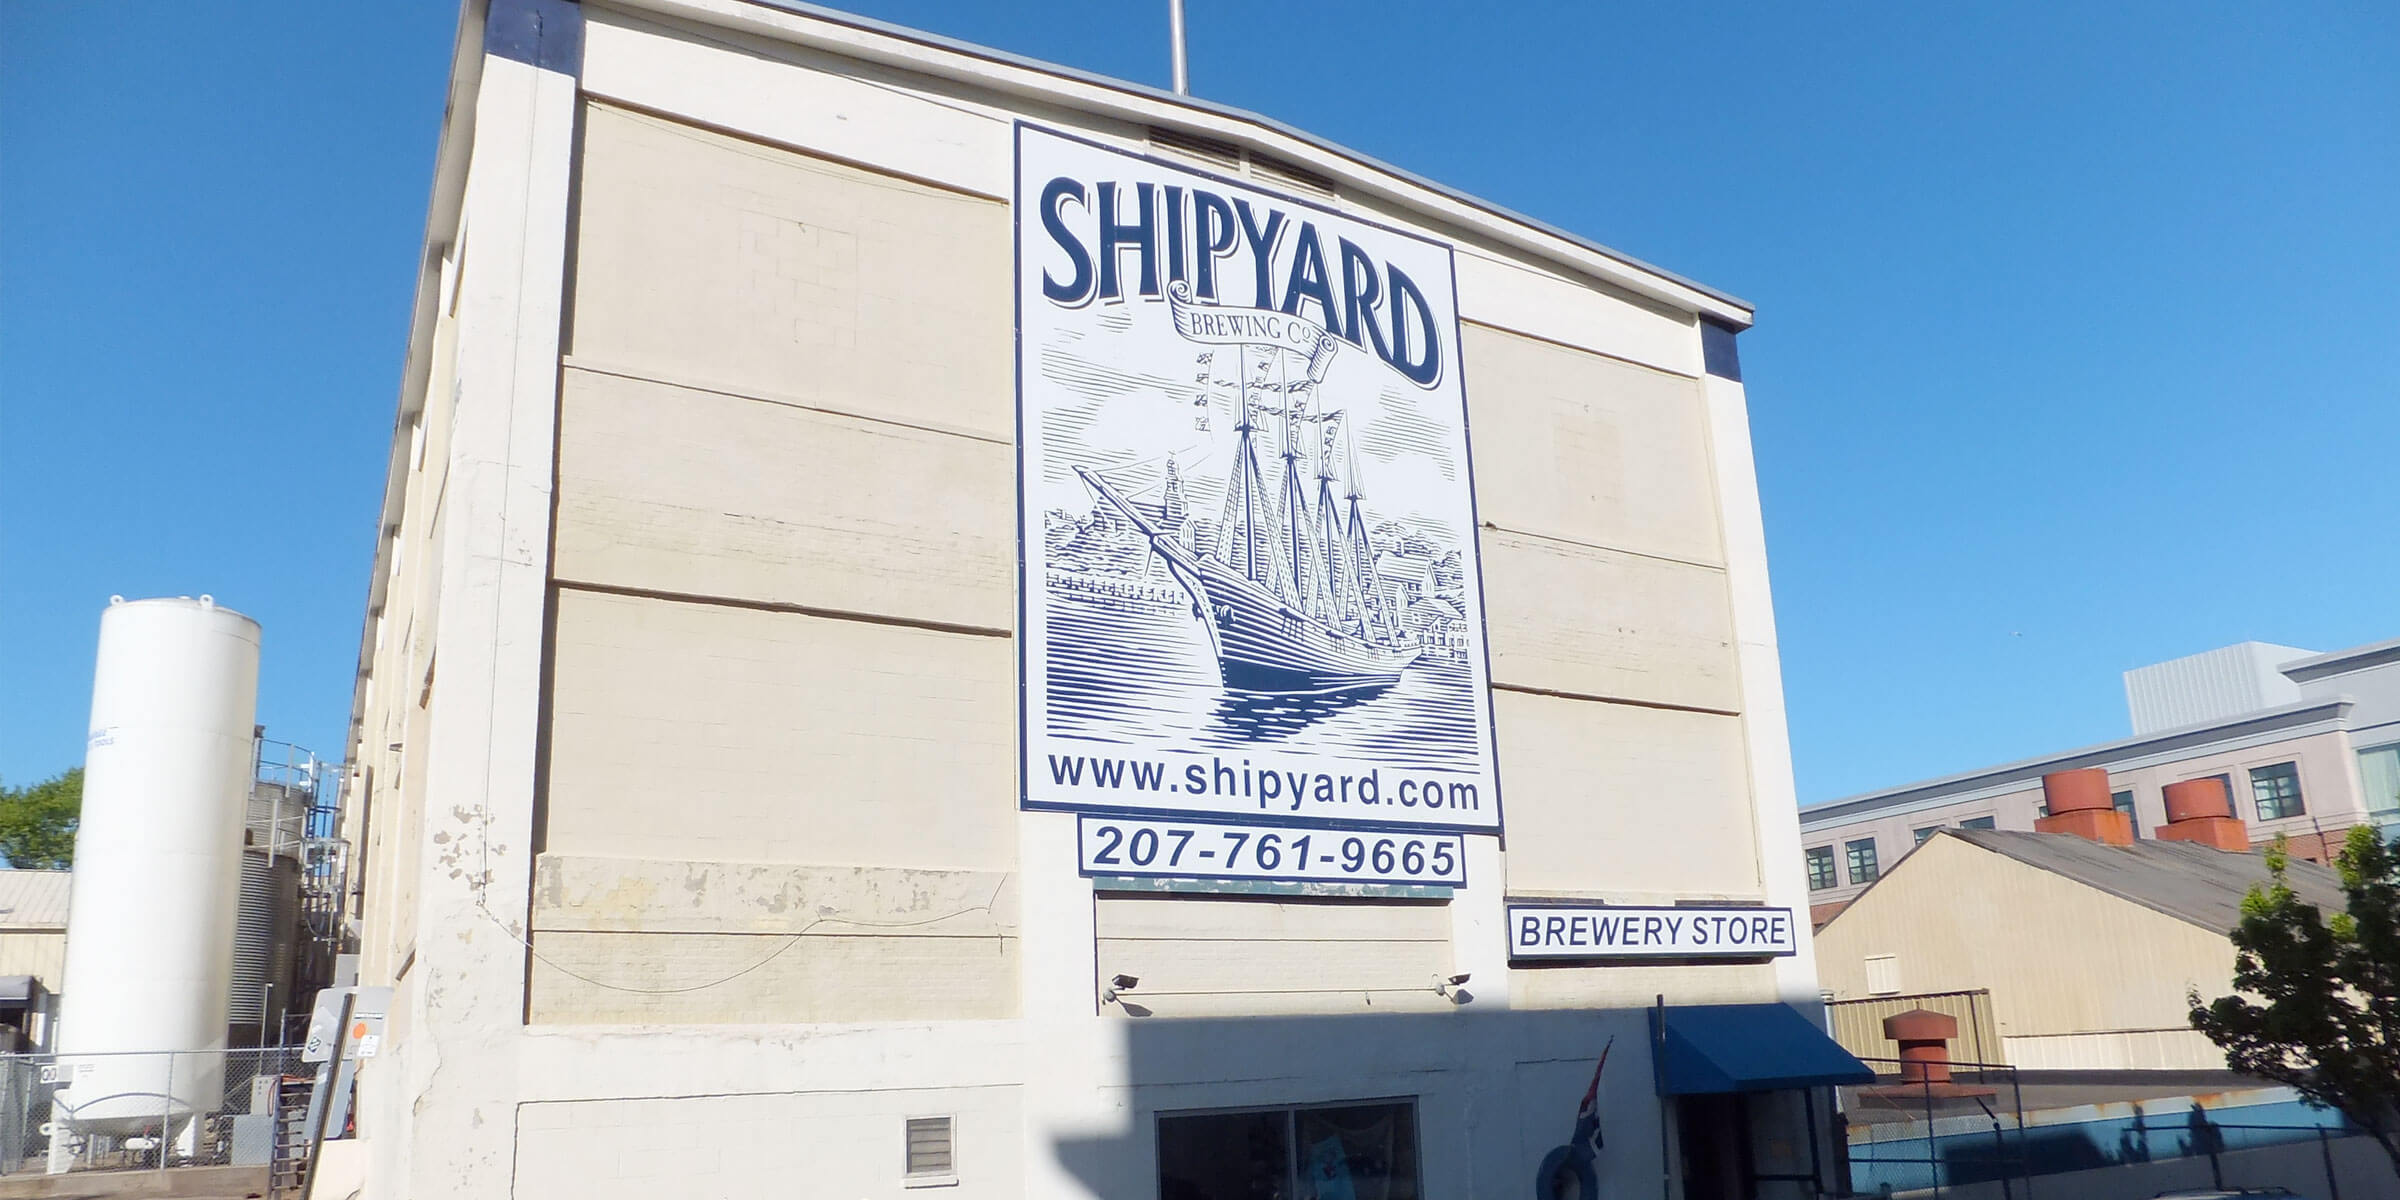 Outside the Brewery and Taproom at Shipyard Brewing Co. in Portland, Maine